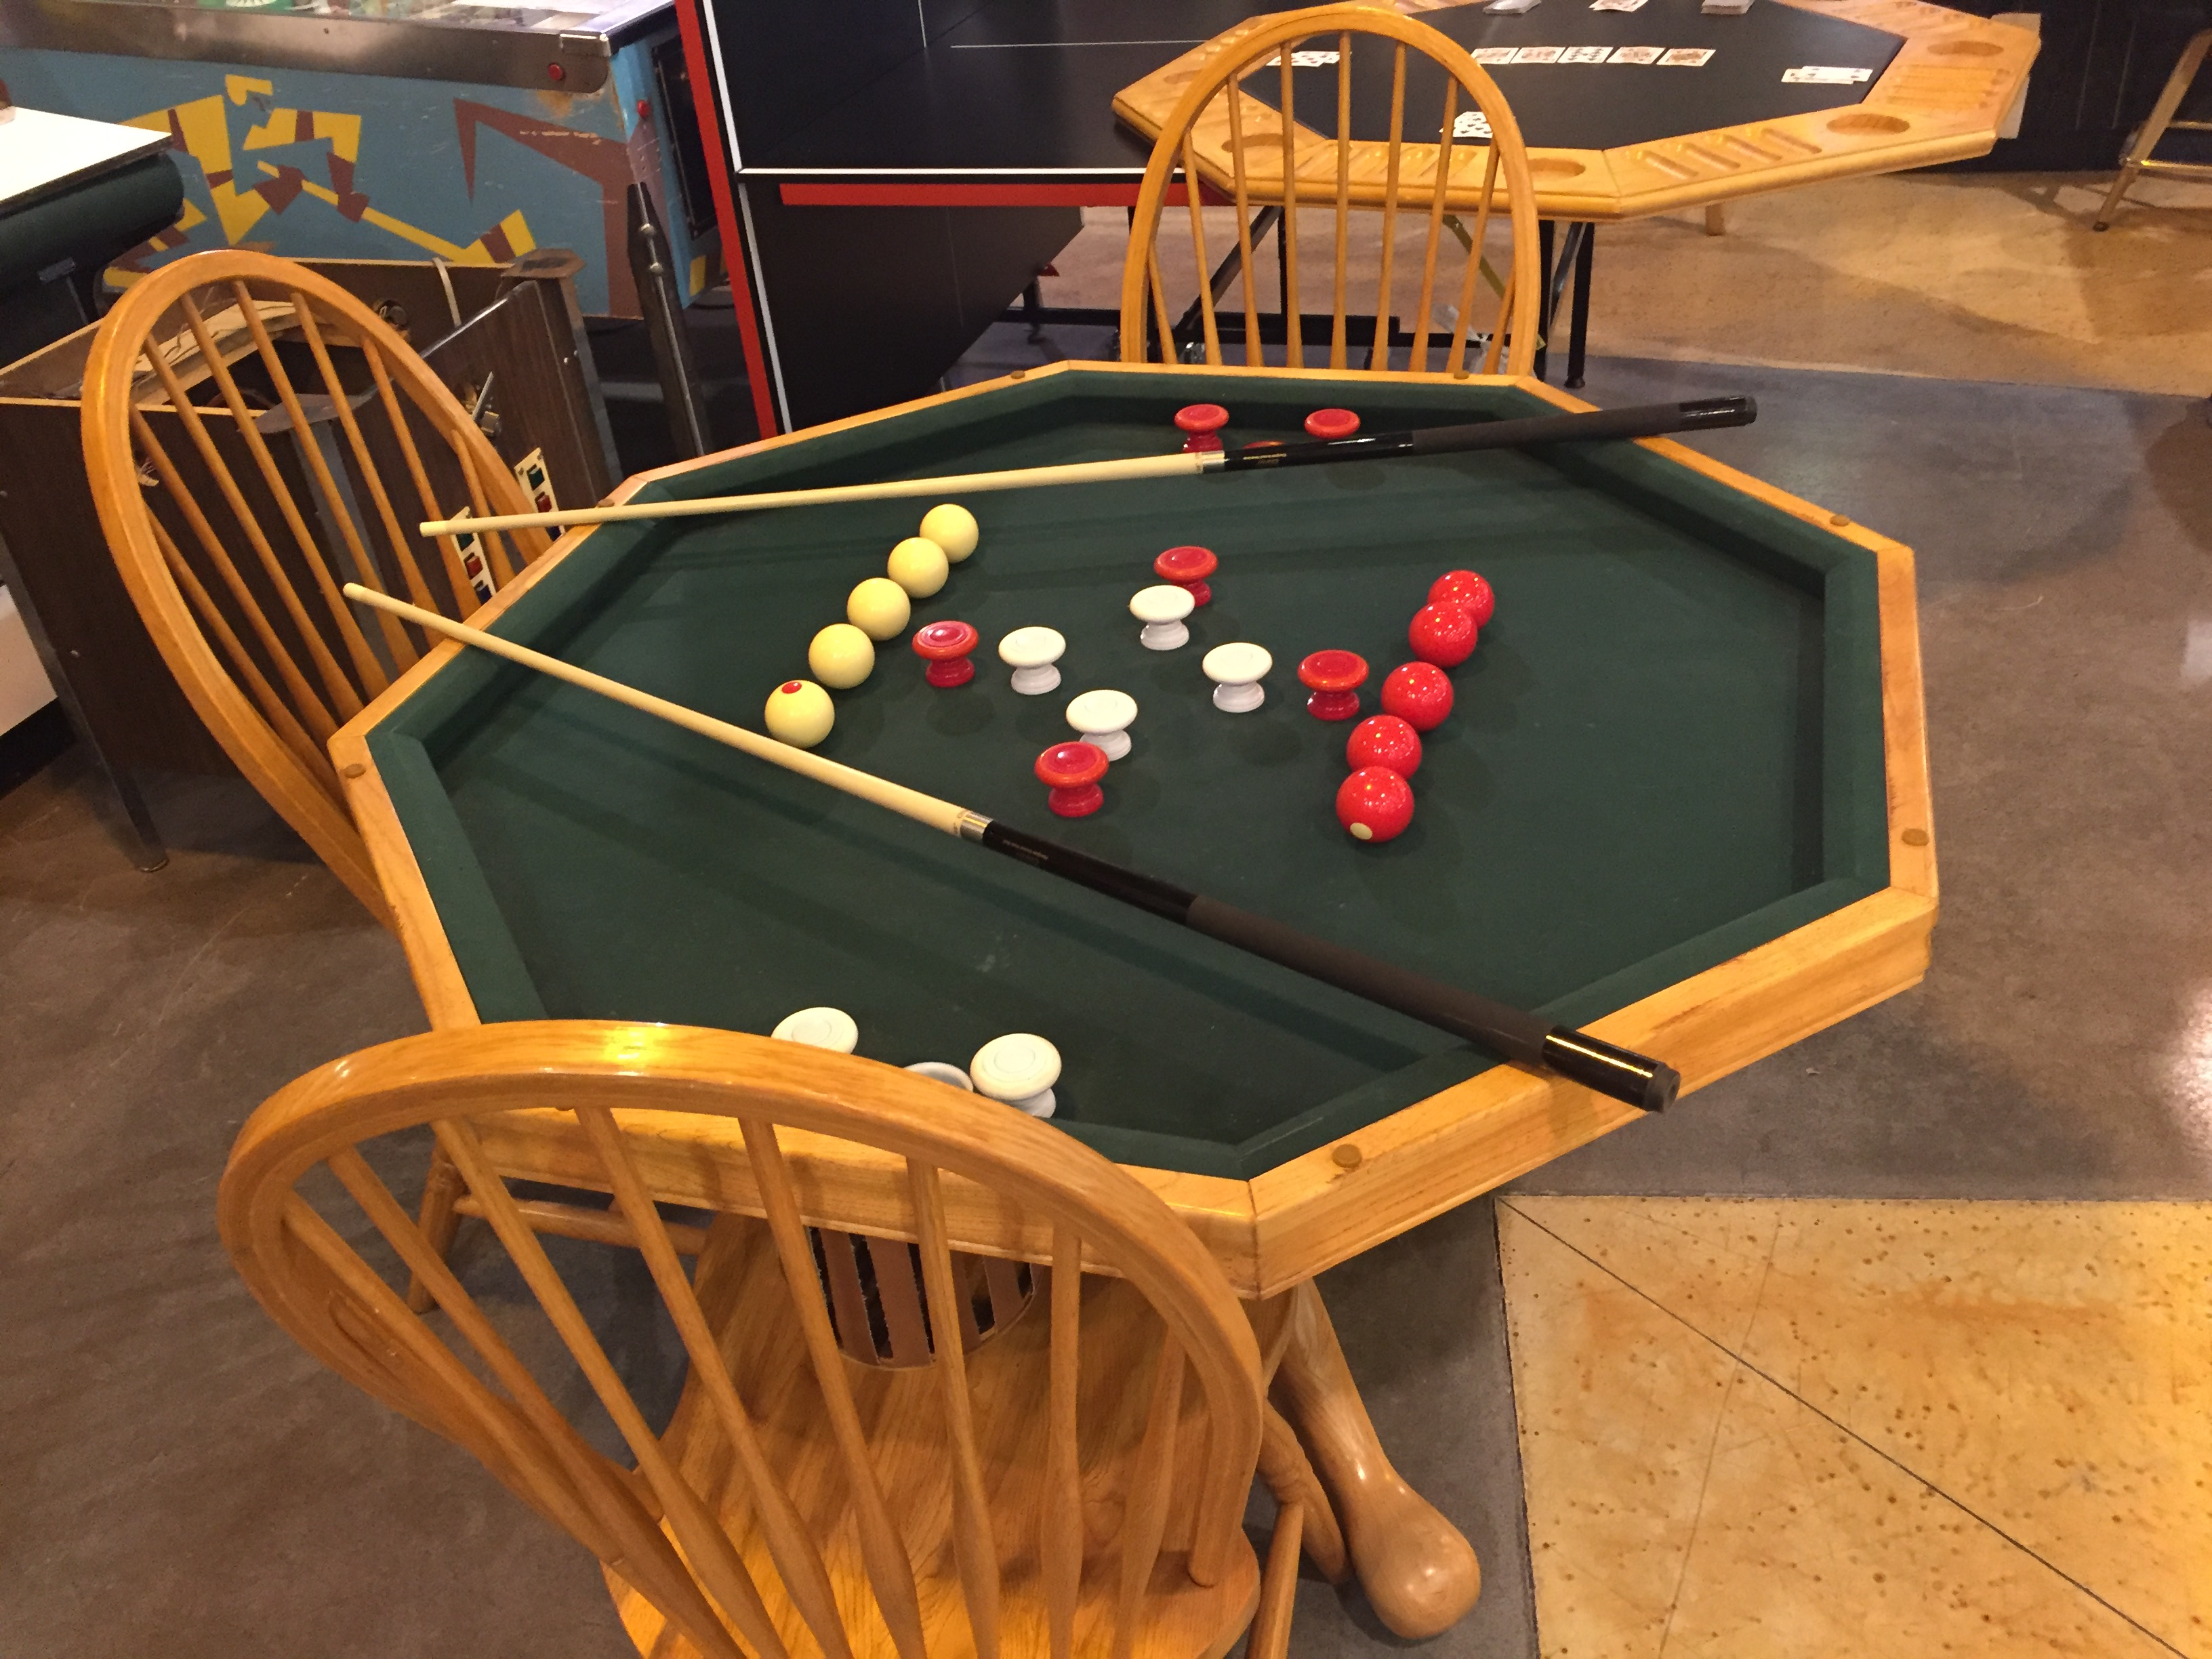 48 Inch 3 In 1 Game Table \u2013 Oak Finish Top With Cup \u0026 Chip Holders Bumper Pool Accessories Four (4) Matching Chairs Games People Play » in